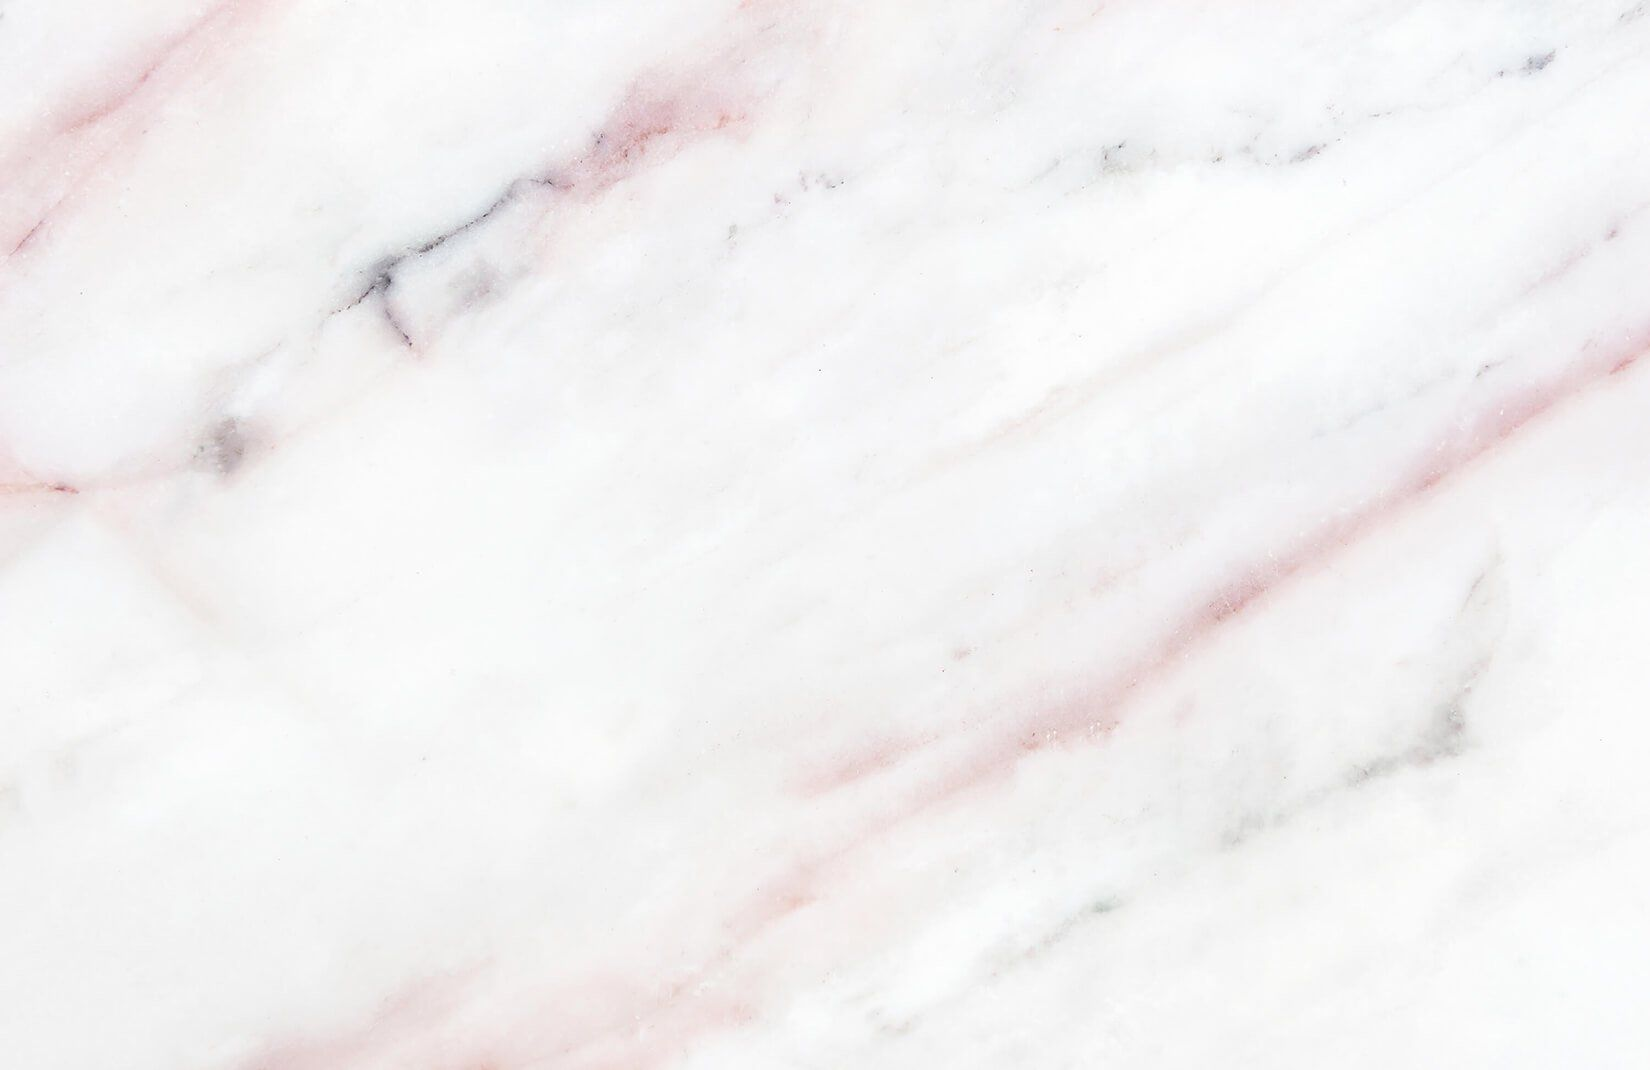 Pink And White Marble Wallpapers Top Free Pink And White Marble Backgrounds Wallpaperaccess